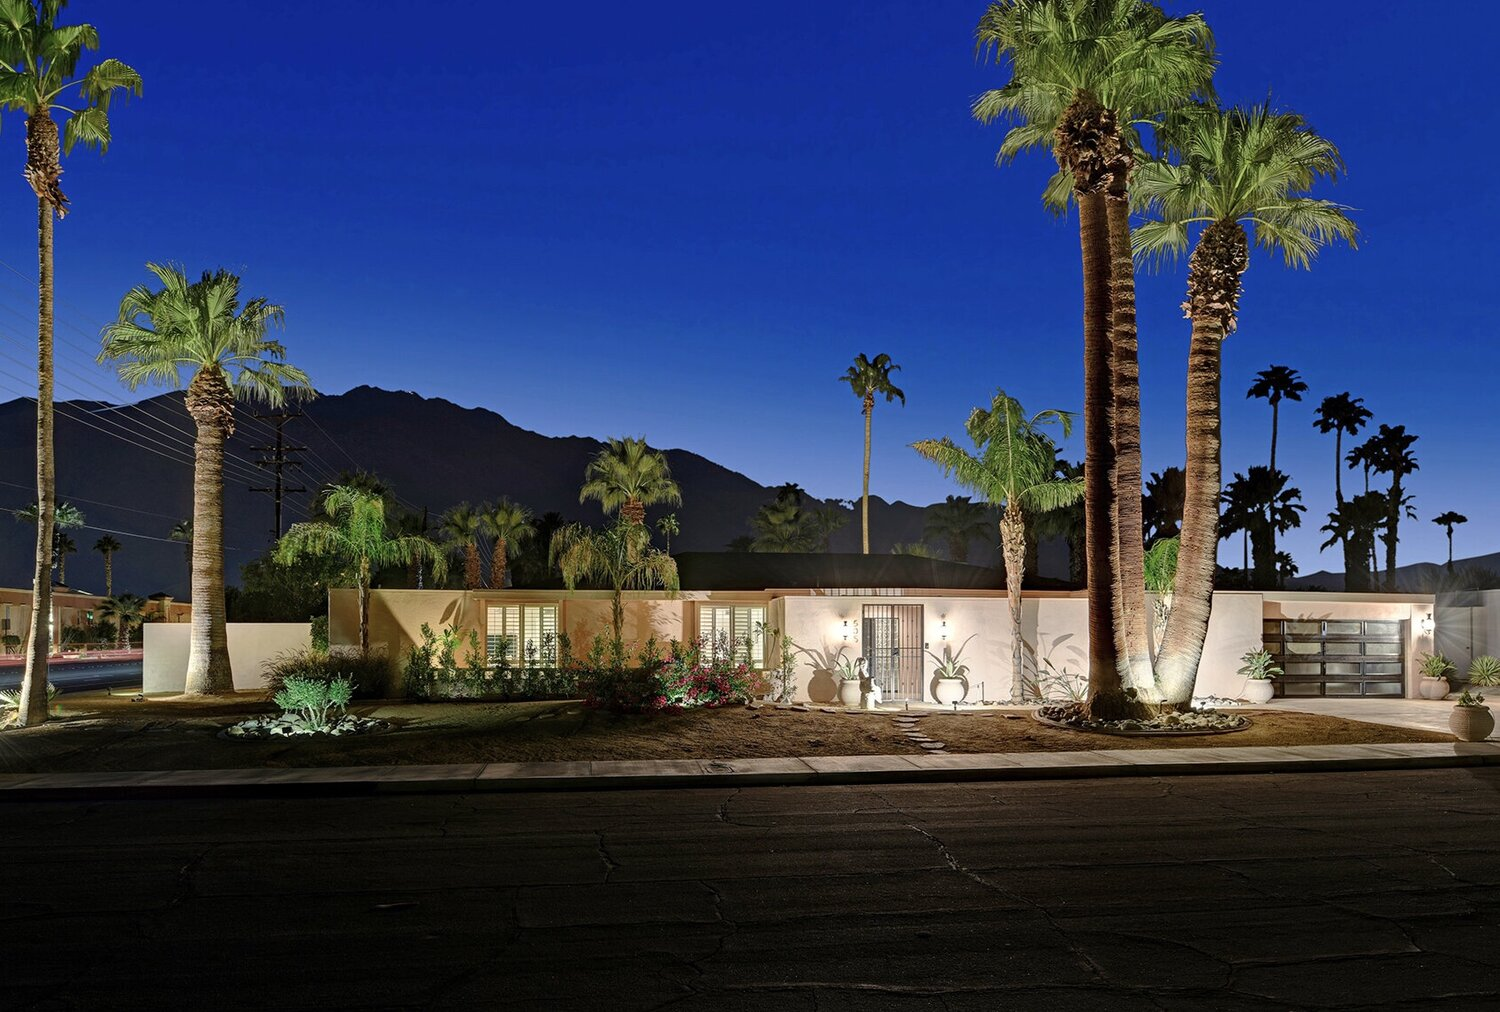 FRONT+OF+HOUSE+TO+MOUNTAINS+NIGHT+RS.jpg